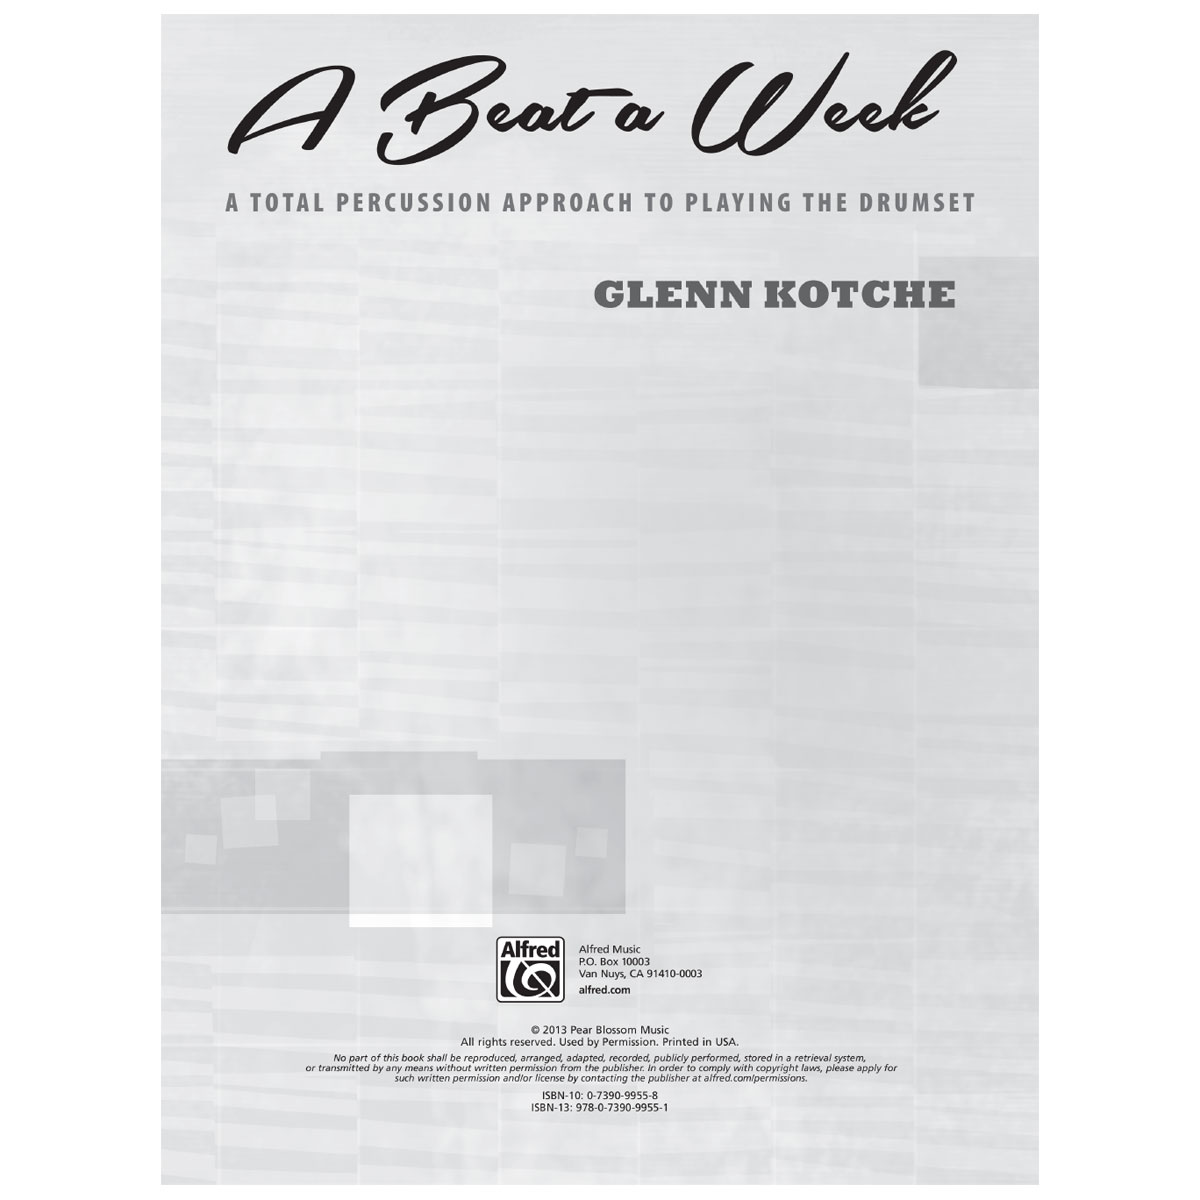 A Beat a Week by Glenn Kotche